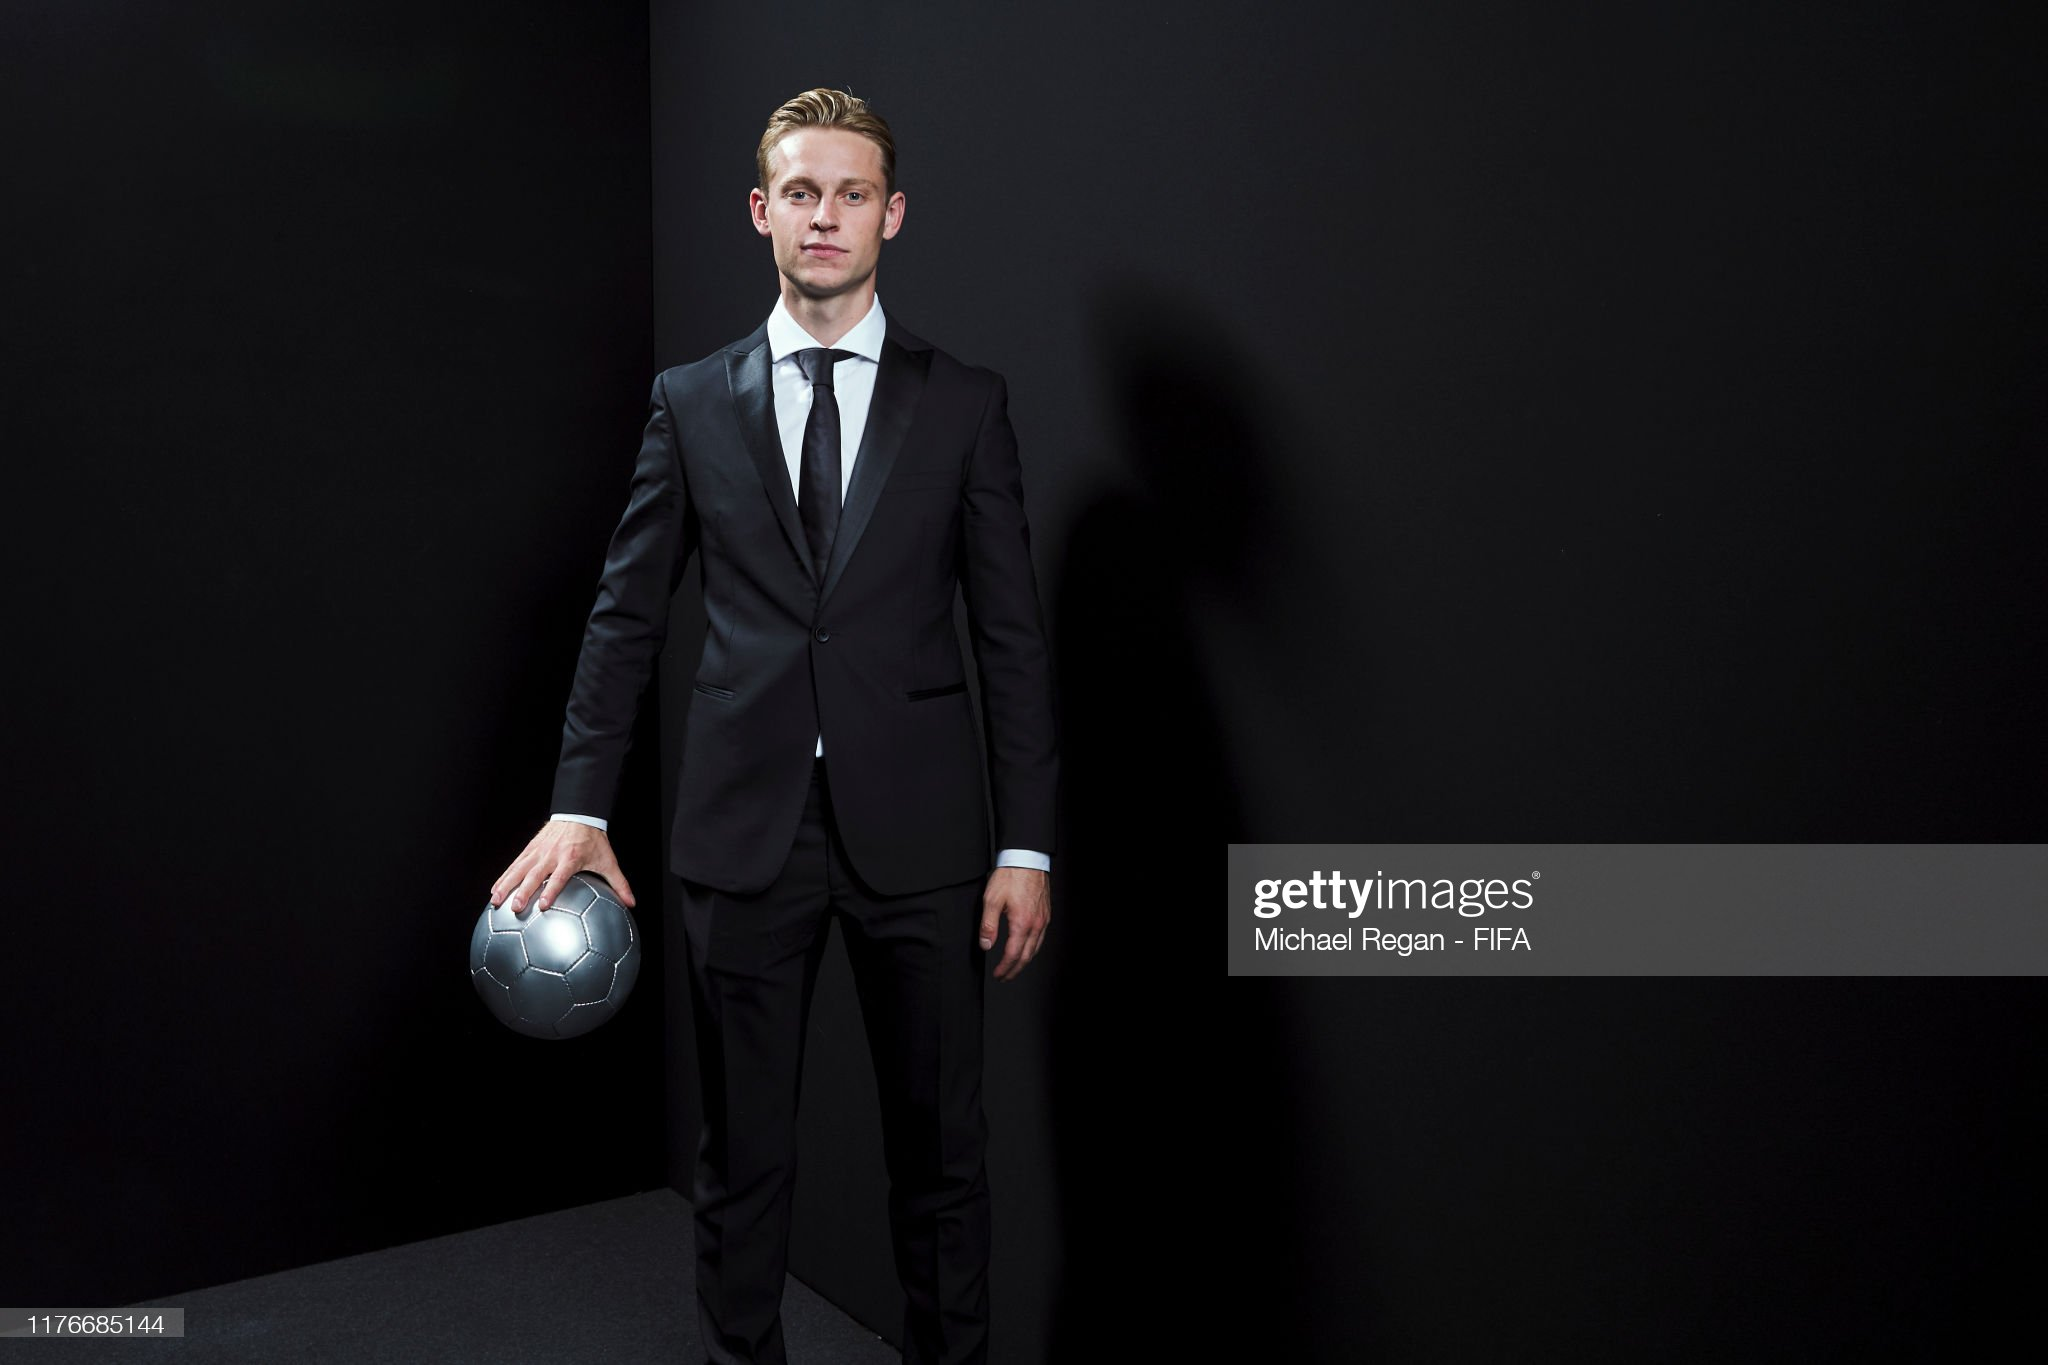 The Best FIFA Football Awards 2019 Frenkie-de-jong-of-barcelona-poses-for-a-portrait-in-the-photo-booth-picture-id1176685144?s=2048x2048